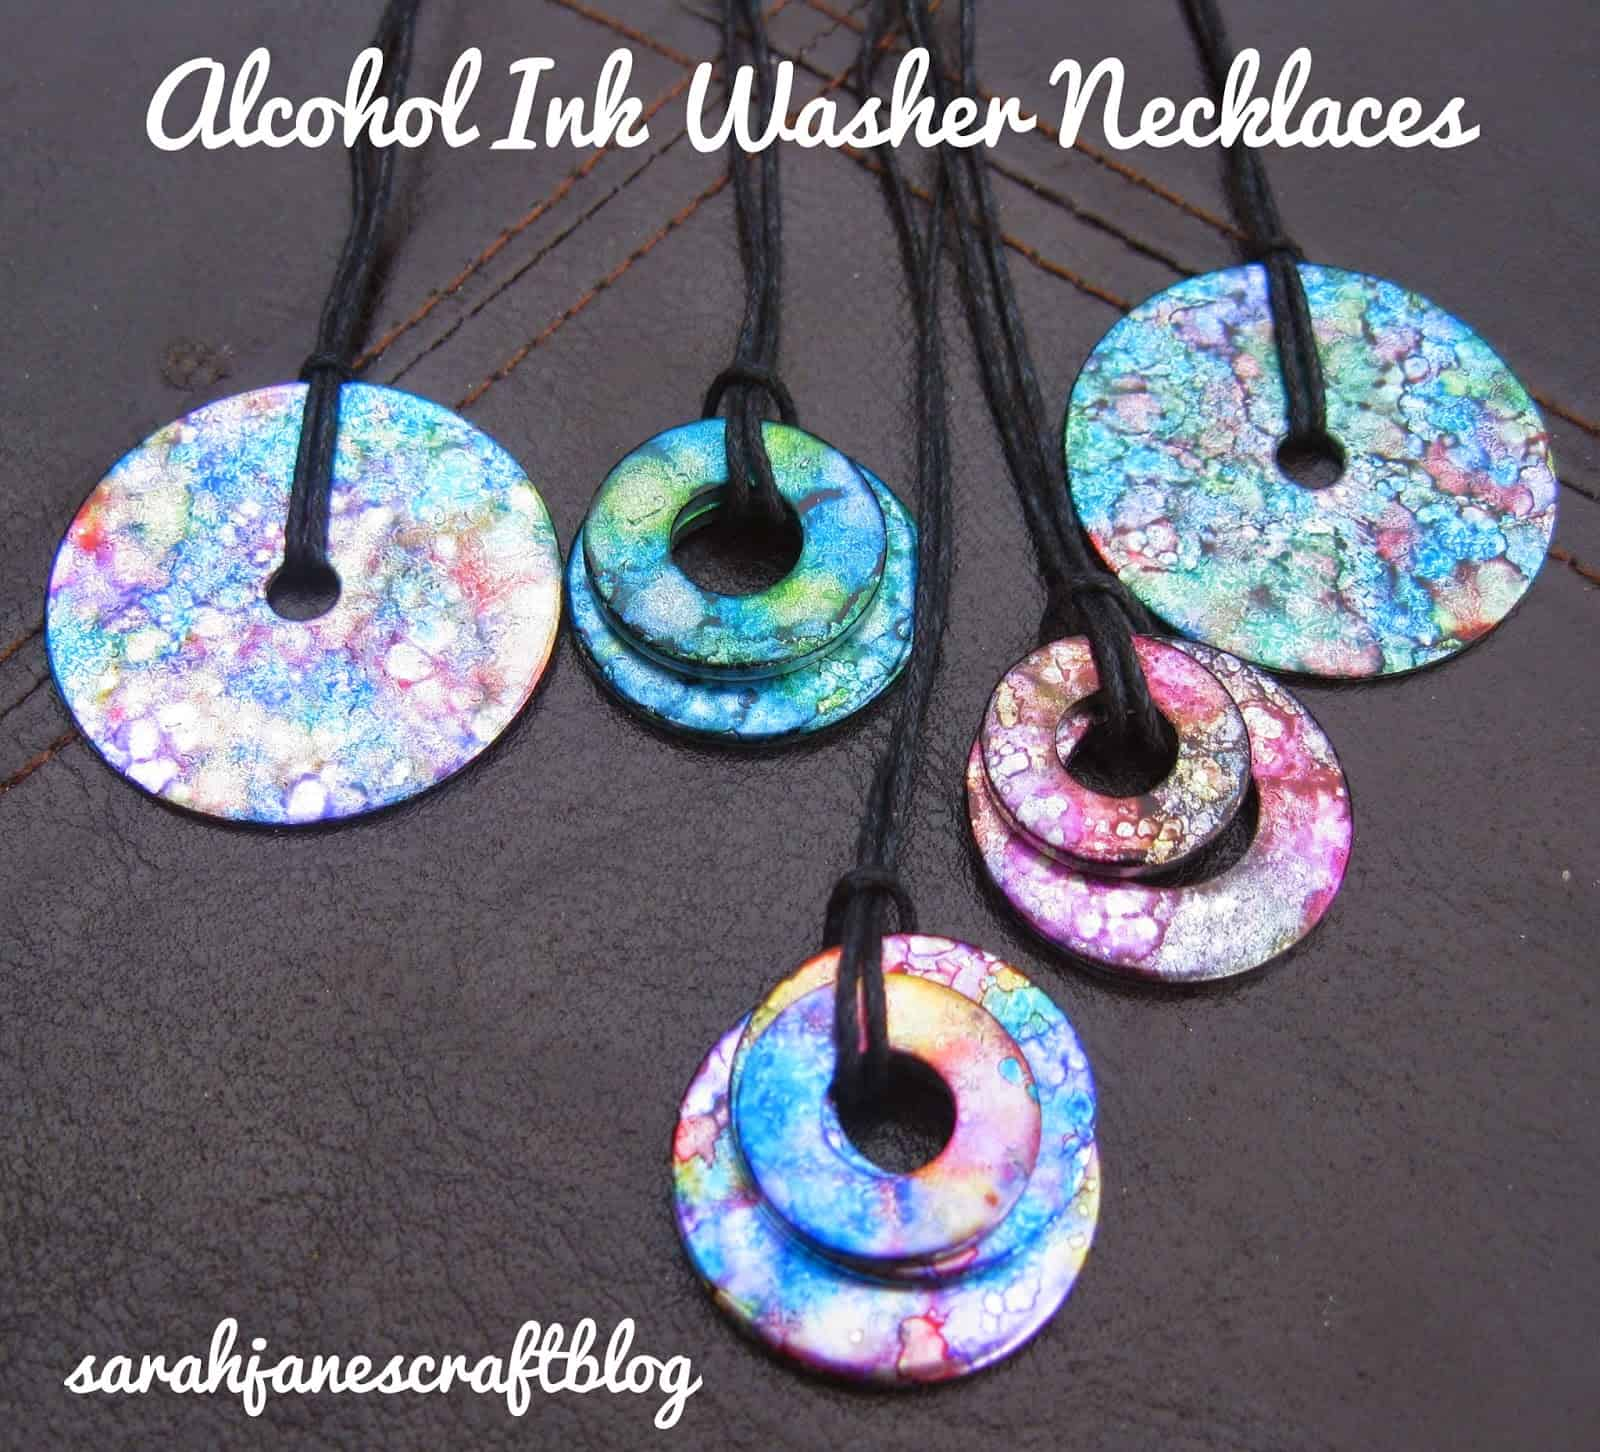 Alcohol ink washer necklaces